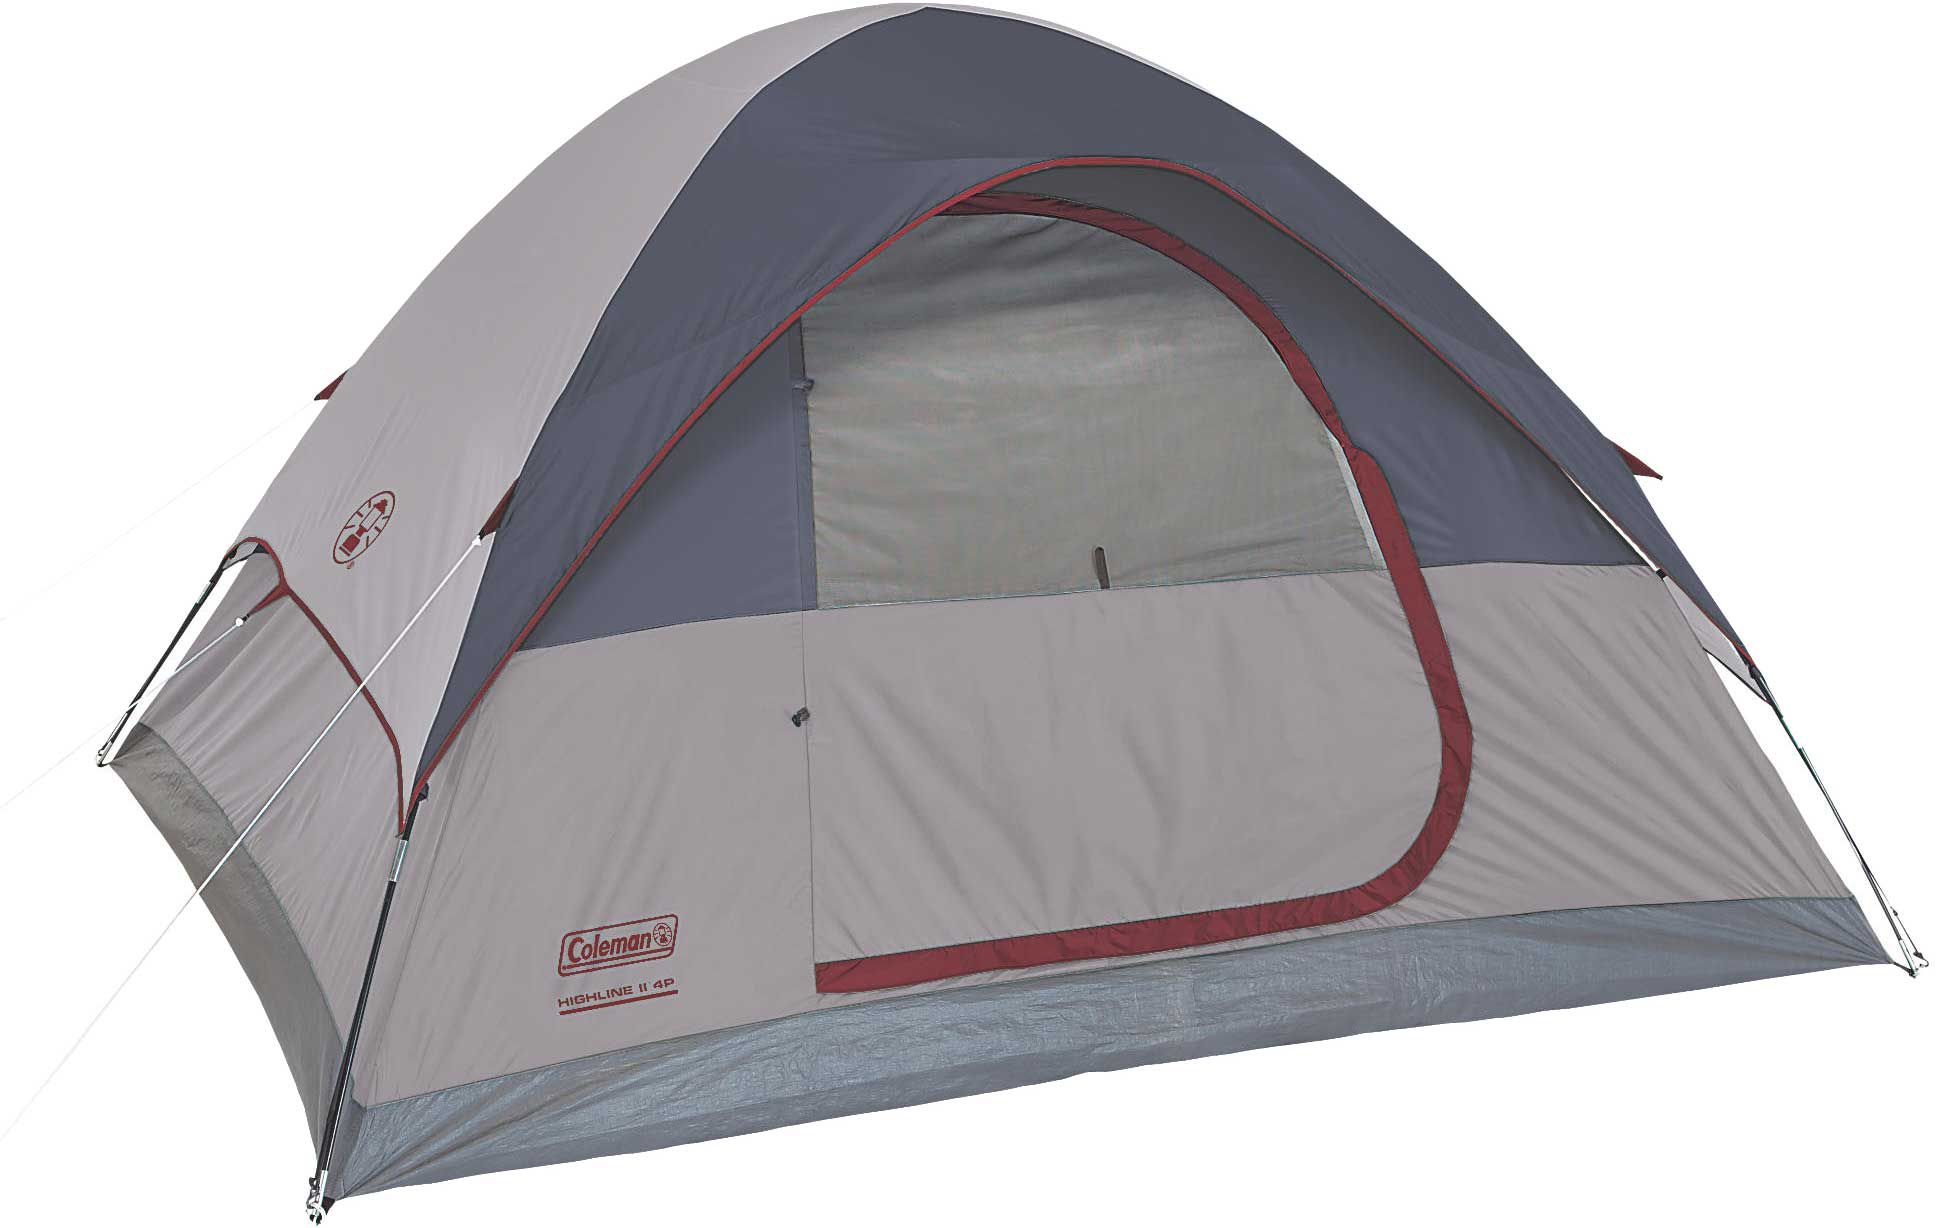 tents camping tents \u0026 more best price guarantee at dick\u0027scoleman highline 4 person dome tent